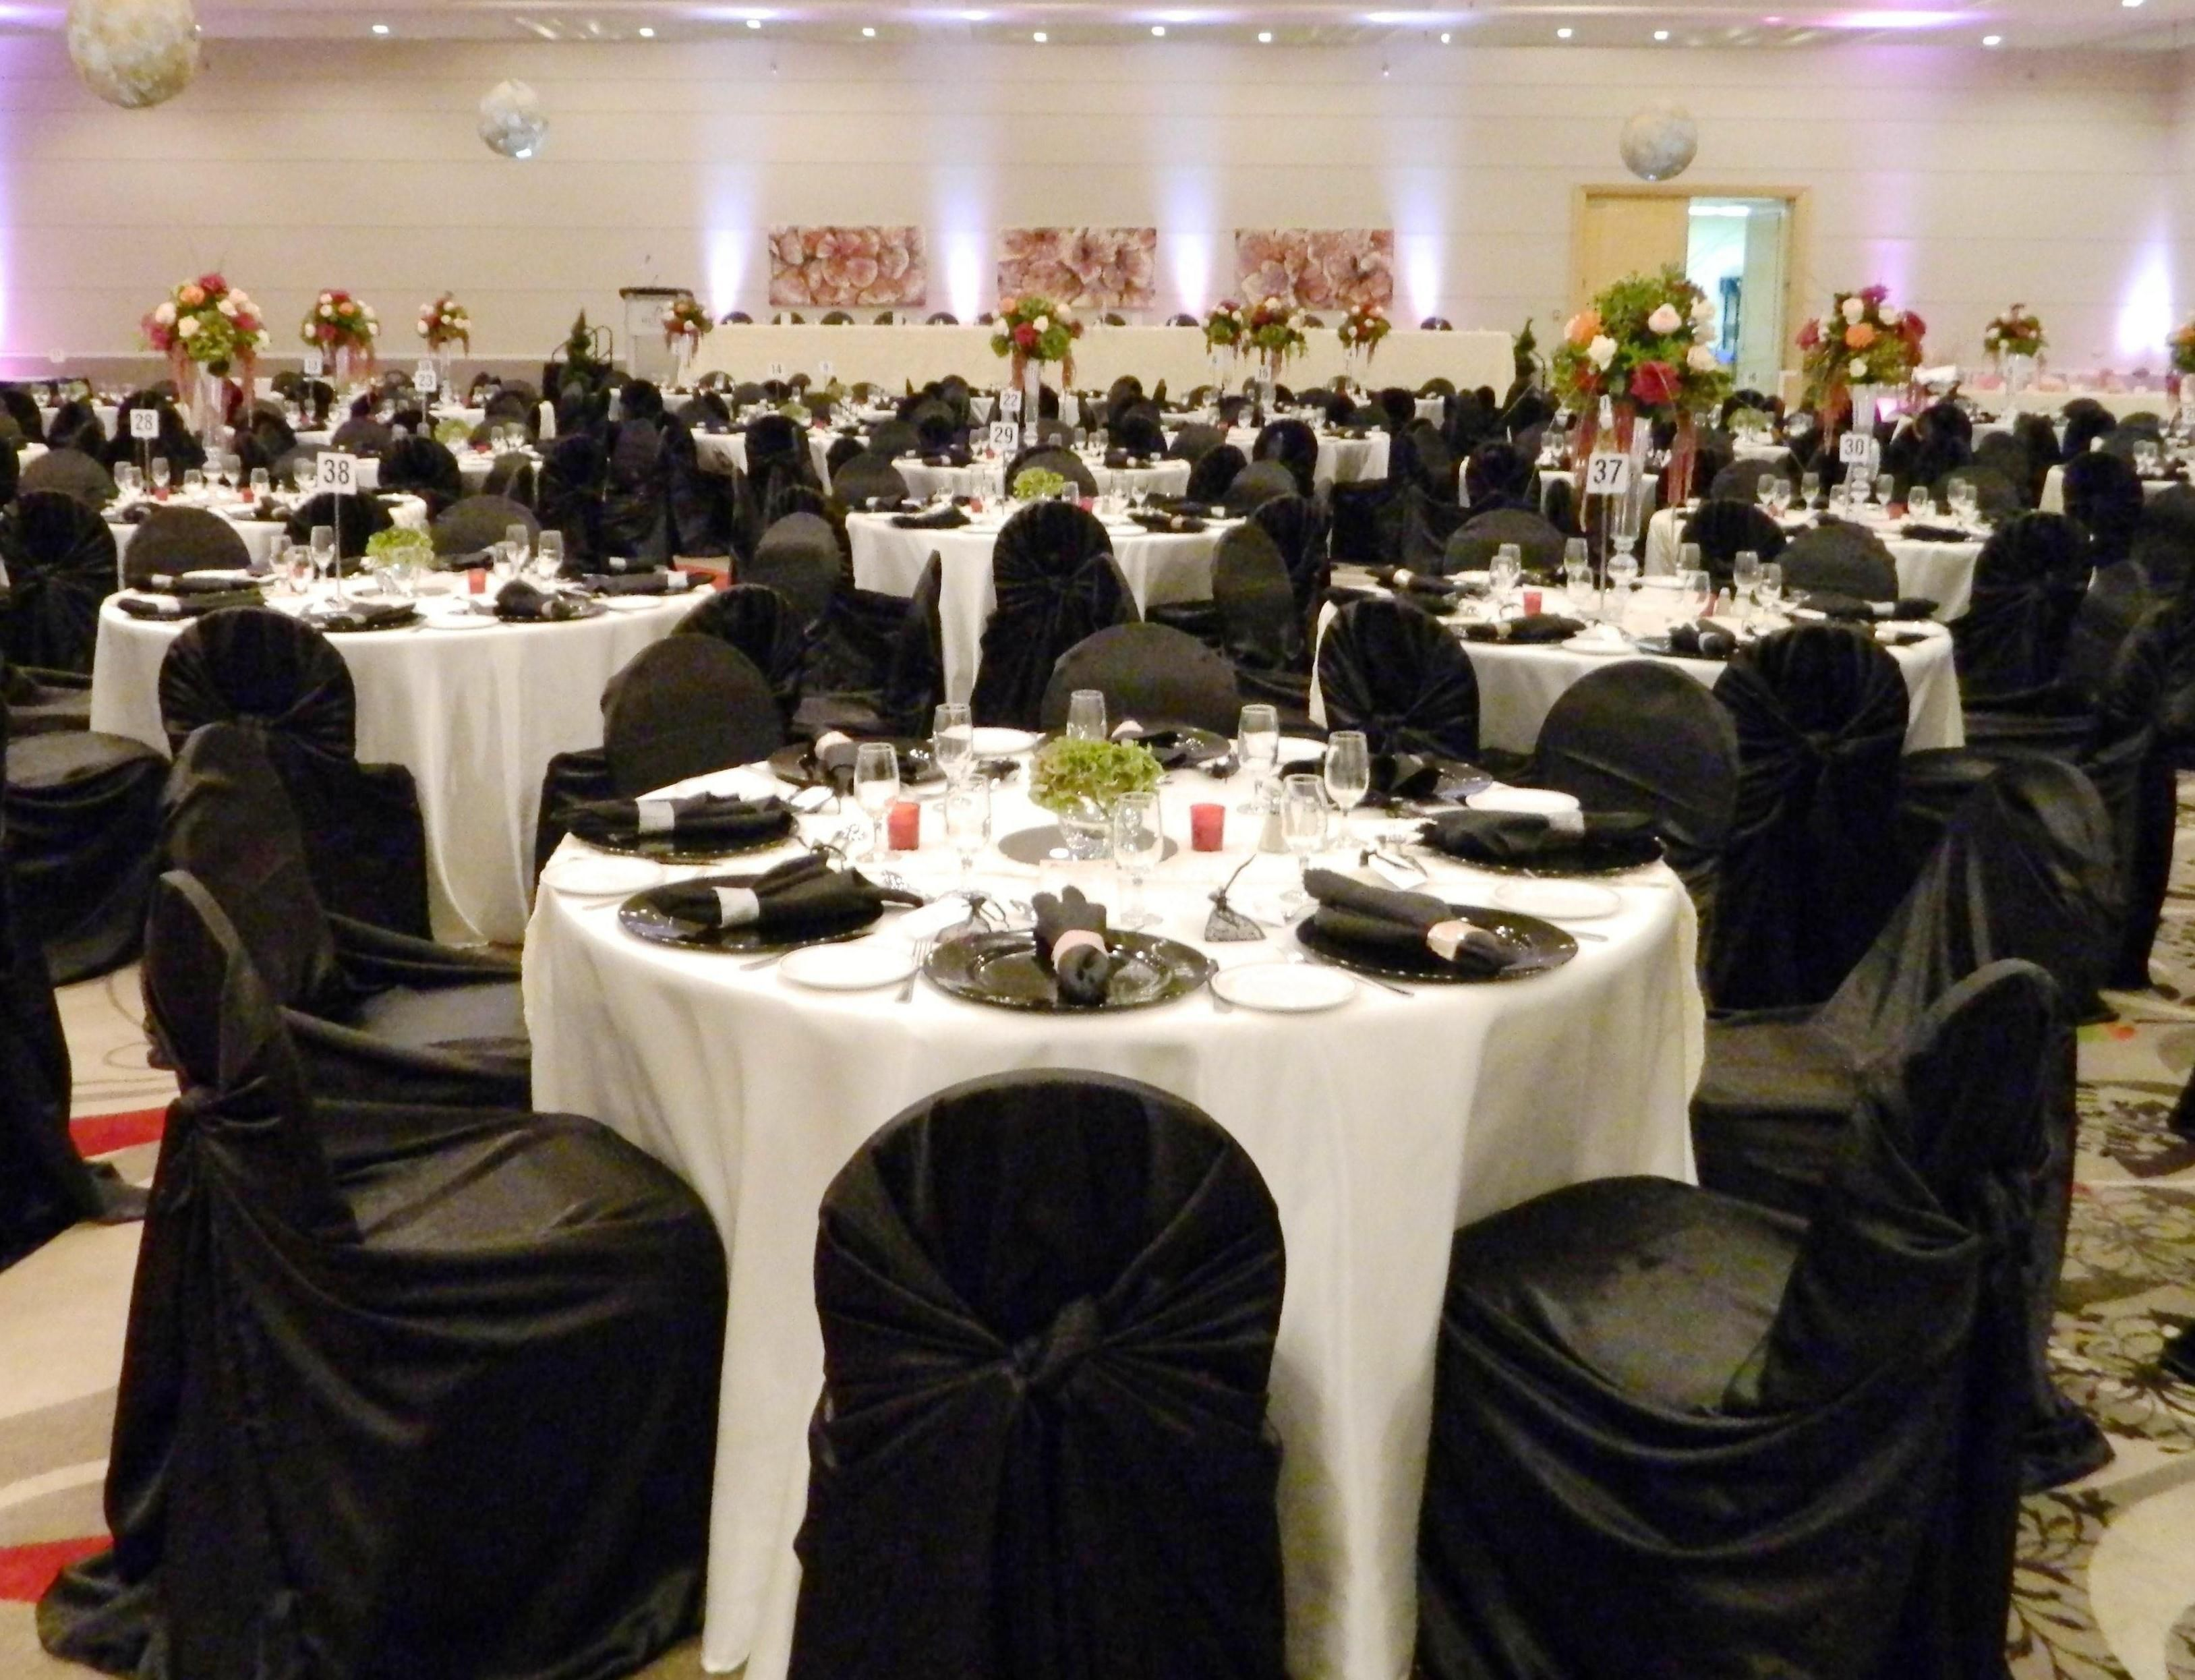 Tablecloths And Chair Covers For Rent Staples Back Support White Black Runner Napkins